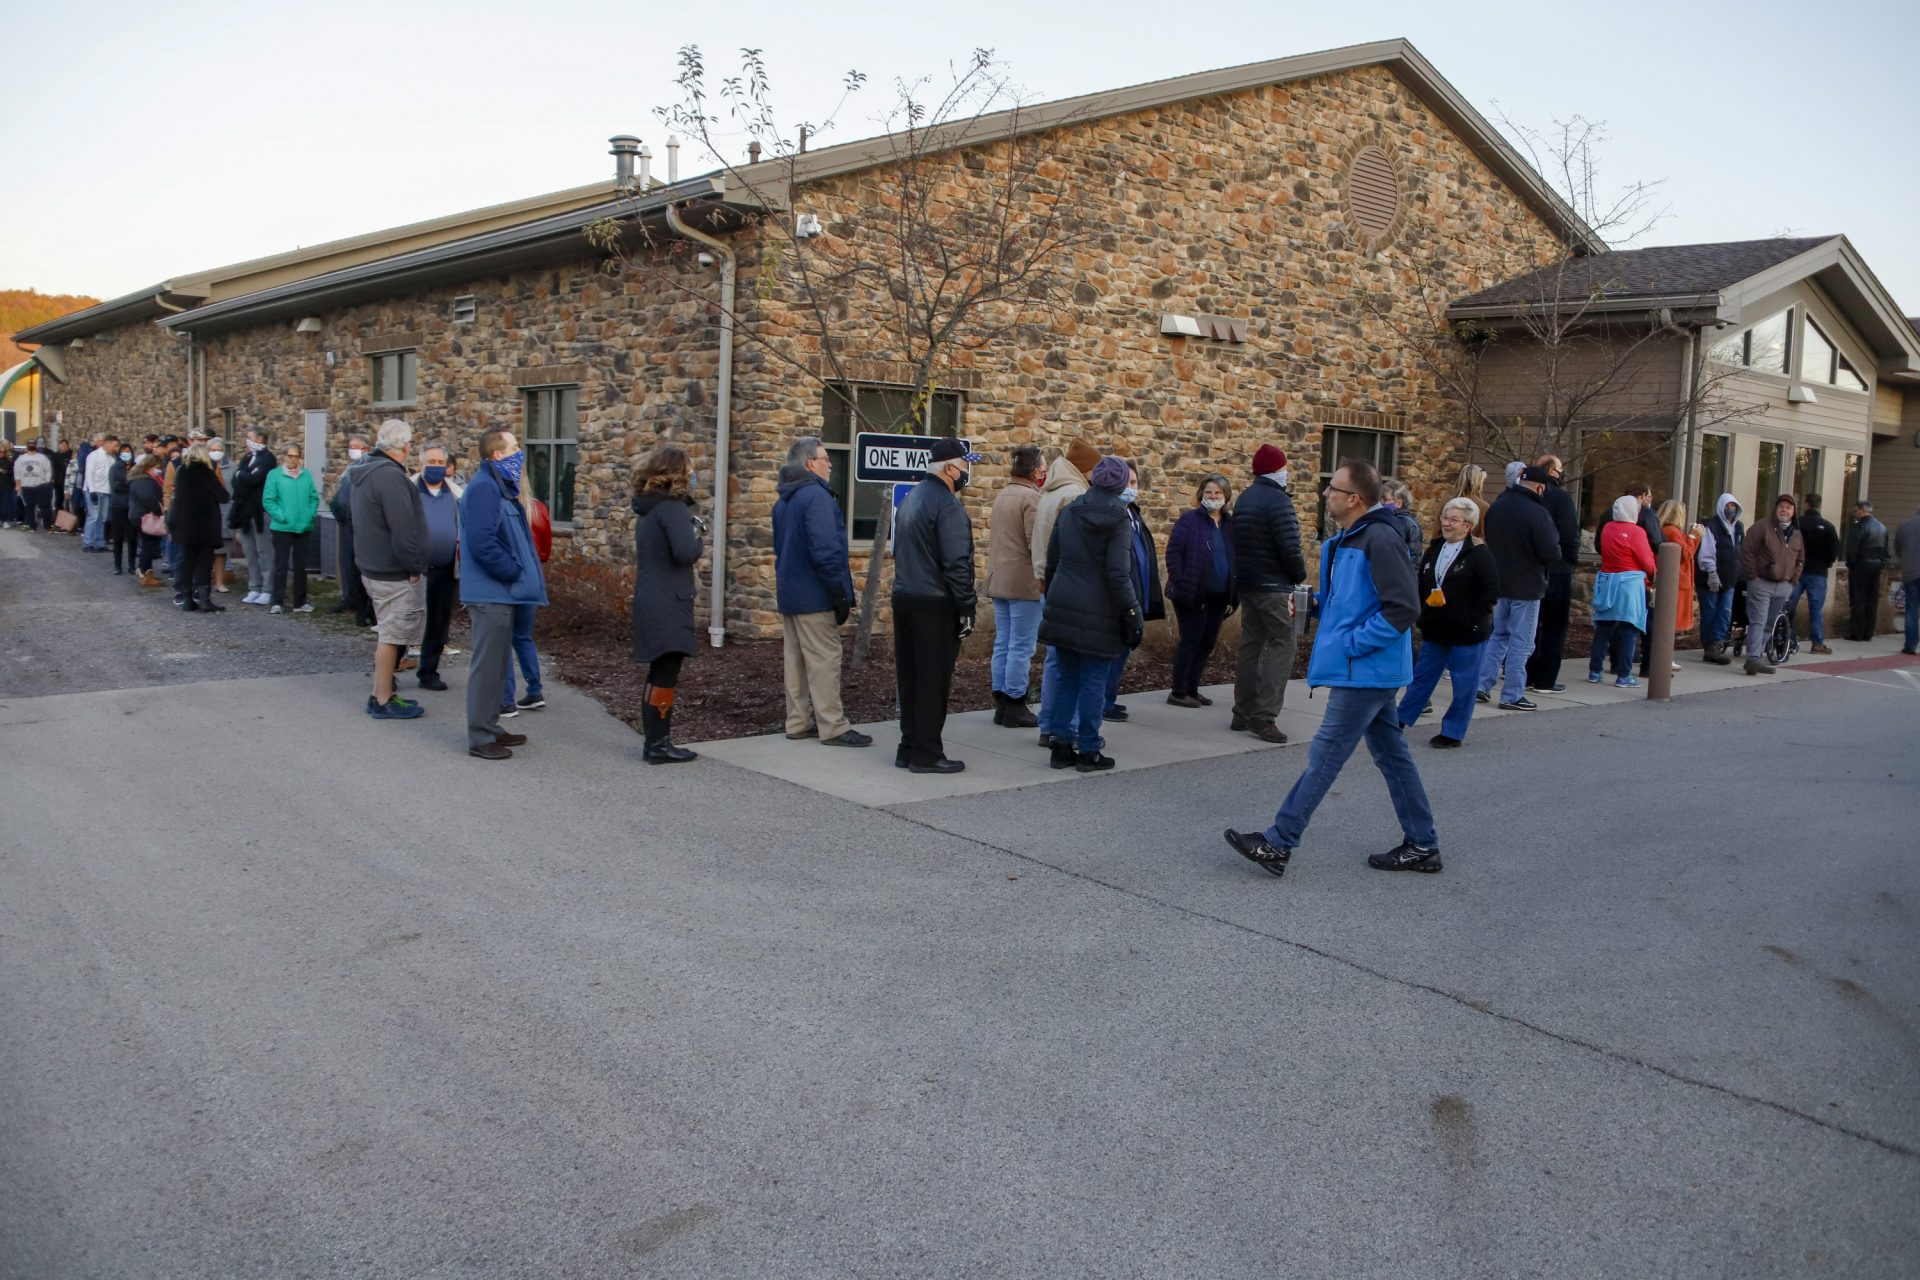 People line up completely surrounding the Jackson Township Municipal Building, in three separate lines alphabetically by last name, as the poll opened, Tuesday, Nov. 3, 2020, Election Day, in Jackson Township, Pa.